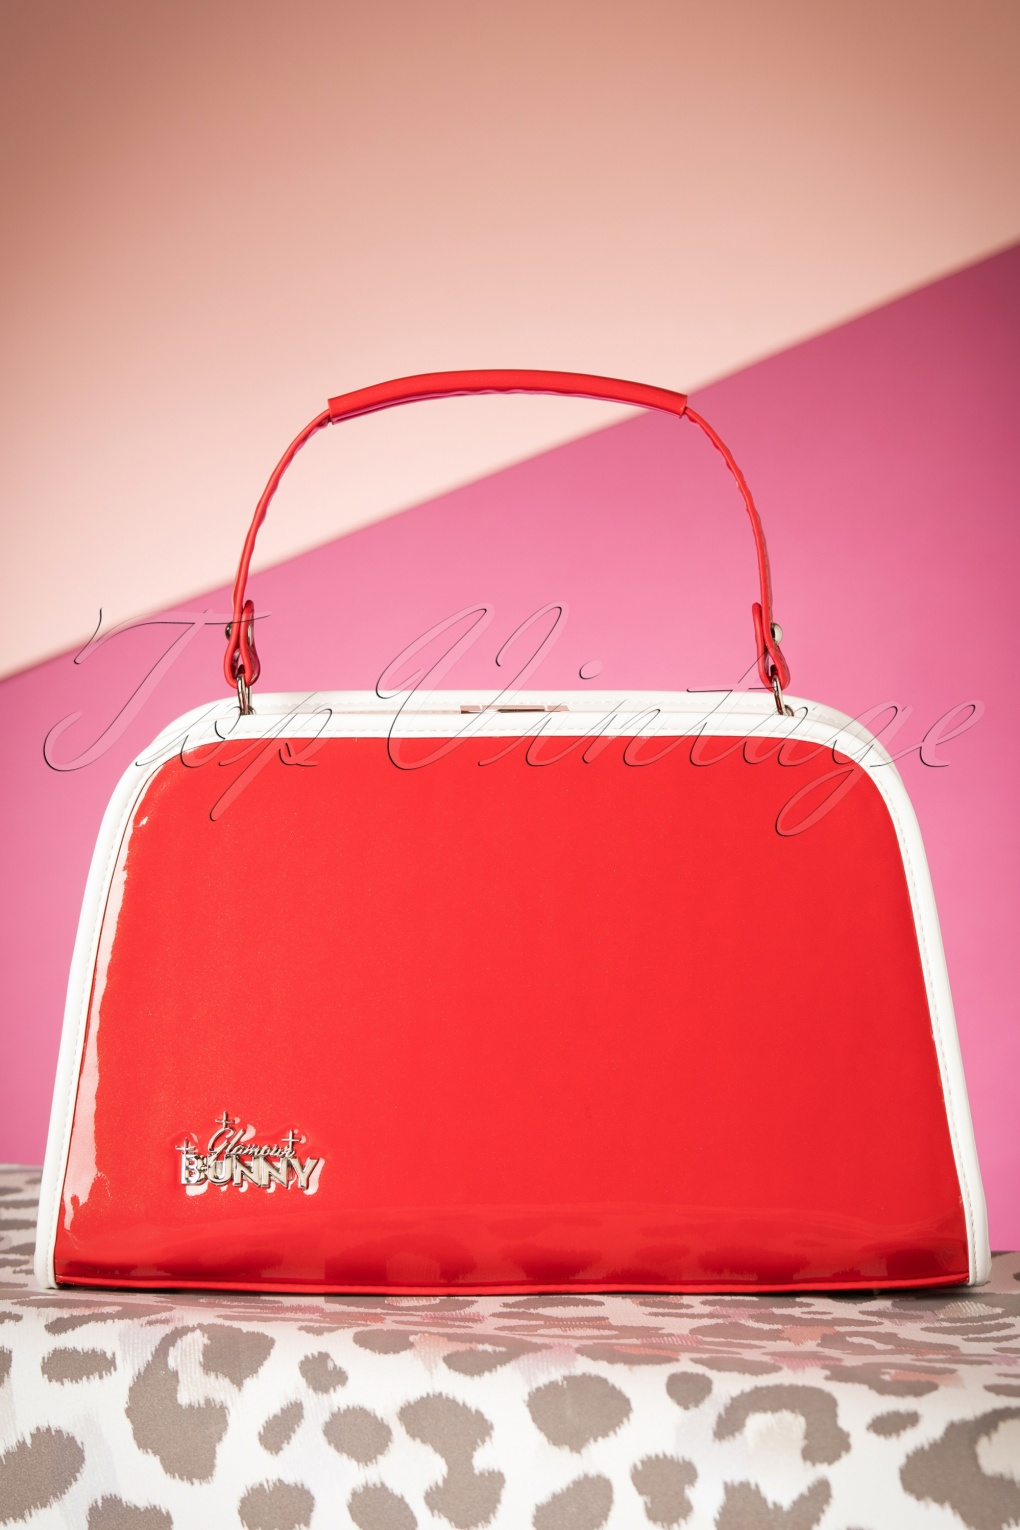 Vintage & Retro Handbags, Purses, Wallets, Bags 50s Patent Glitter Box Handbag in Red £39.92 AT vintagedancer.com